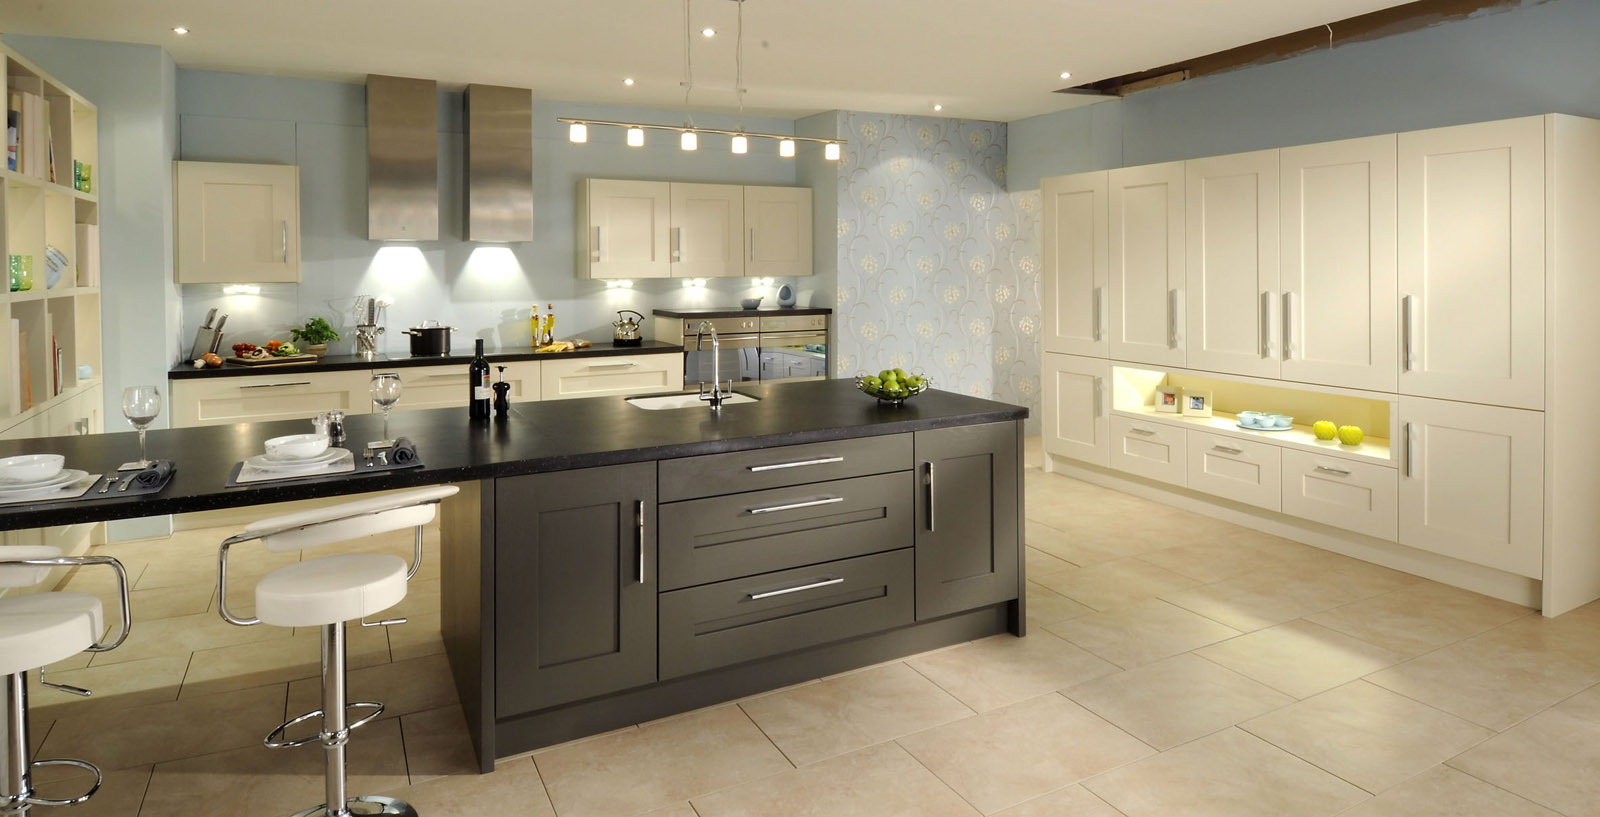 beige kitchen wall and cabinets in ultramodern kitchen decor beige kitchen wall